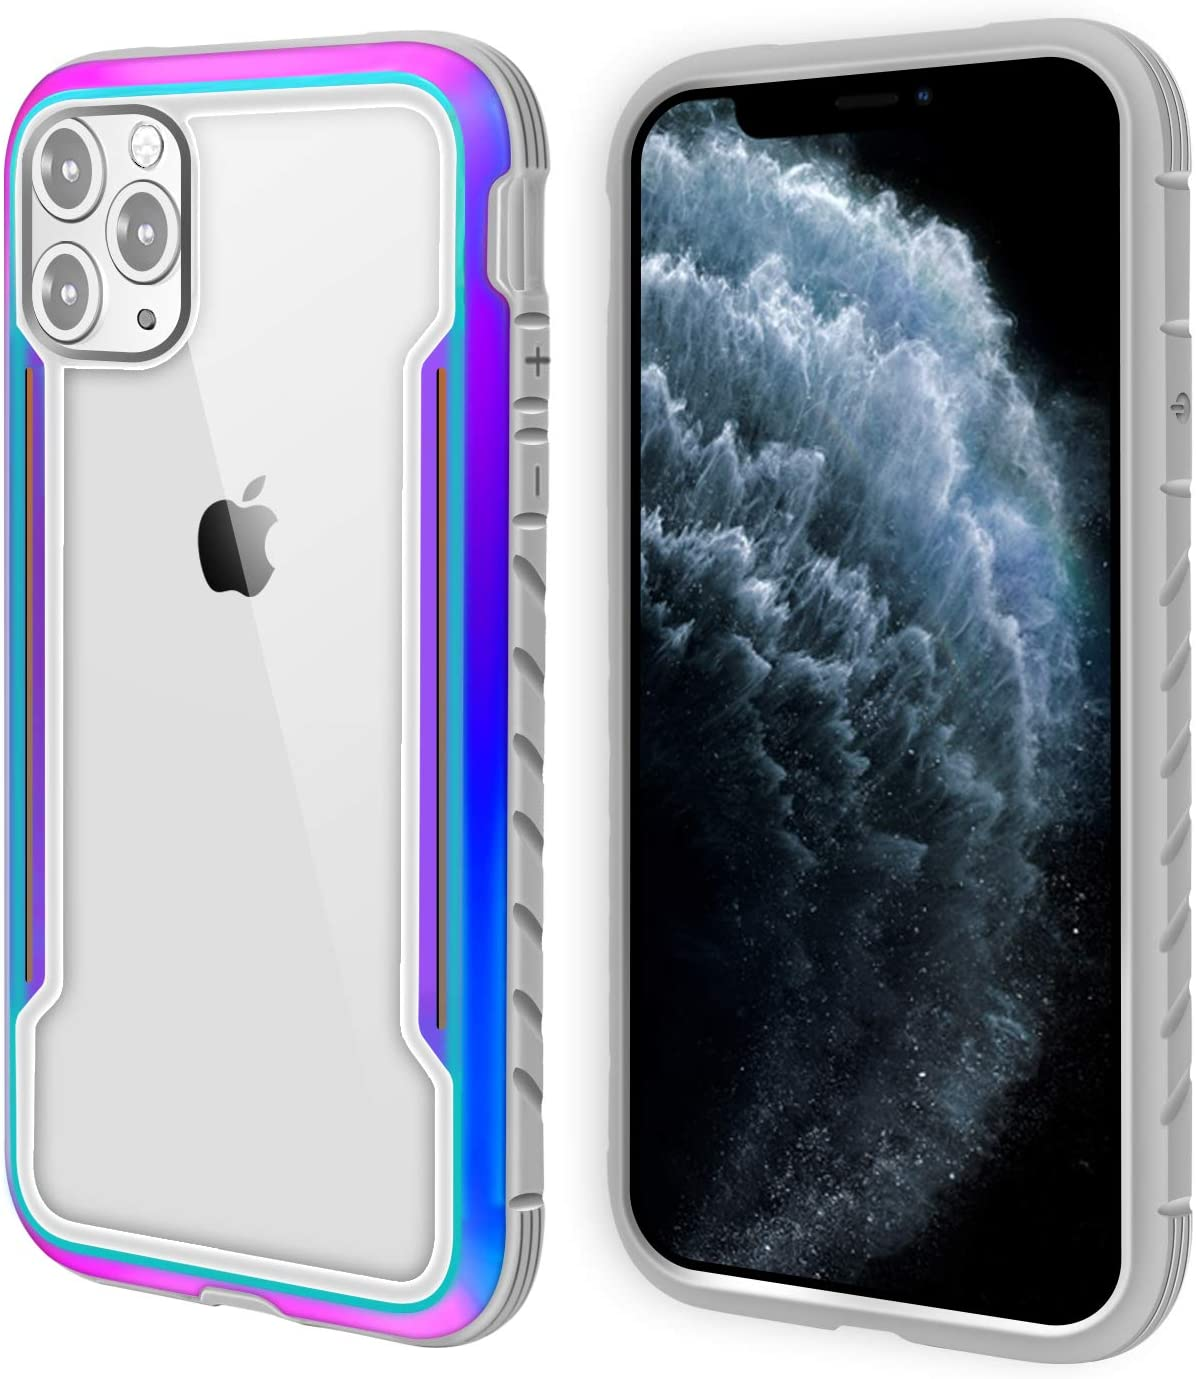 AFARER iPhone 11 Pro Max Case,Military Grade Drop Test,Aluminum Metal Frame with Elastic Soft TPU Rubber and Transparent PC Back Cover,Support Wireless Charging for iPhone 11 Pro Max 6.5 inch Rainbow